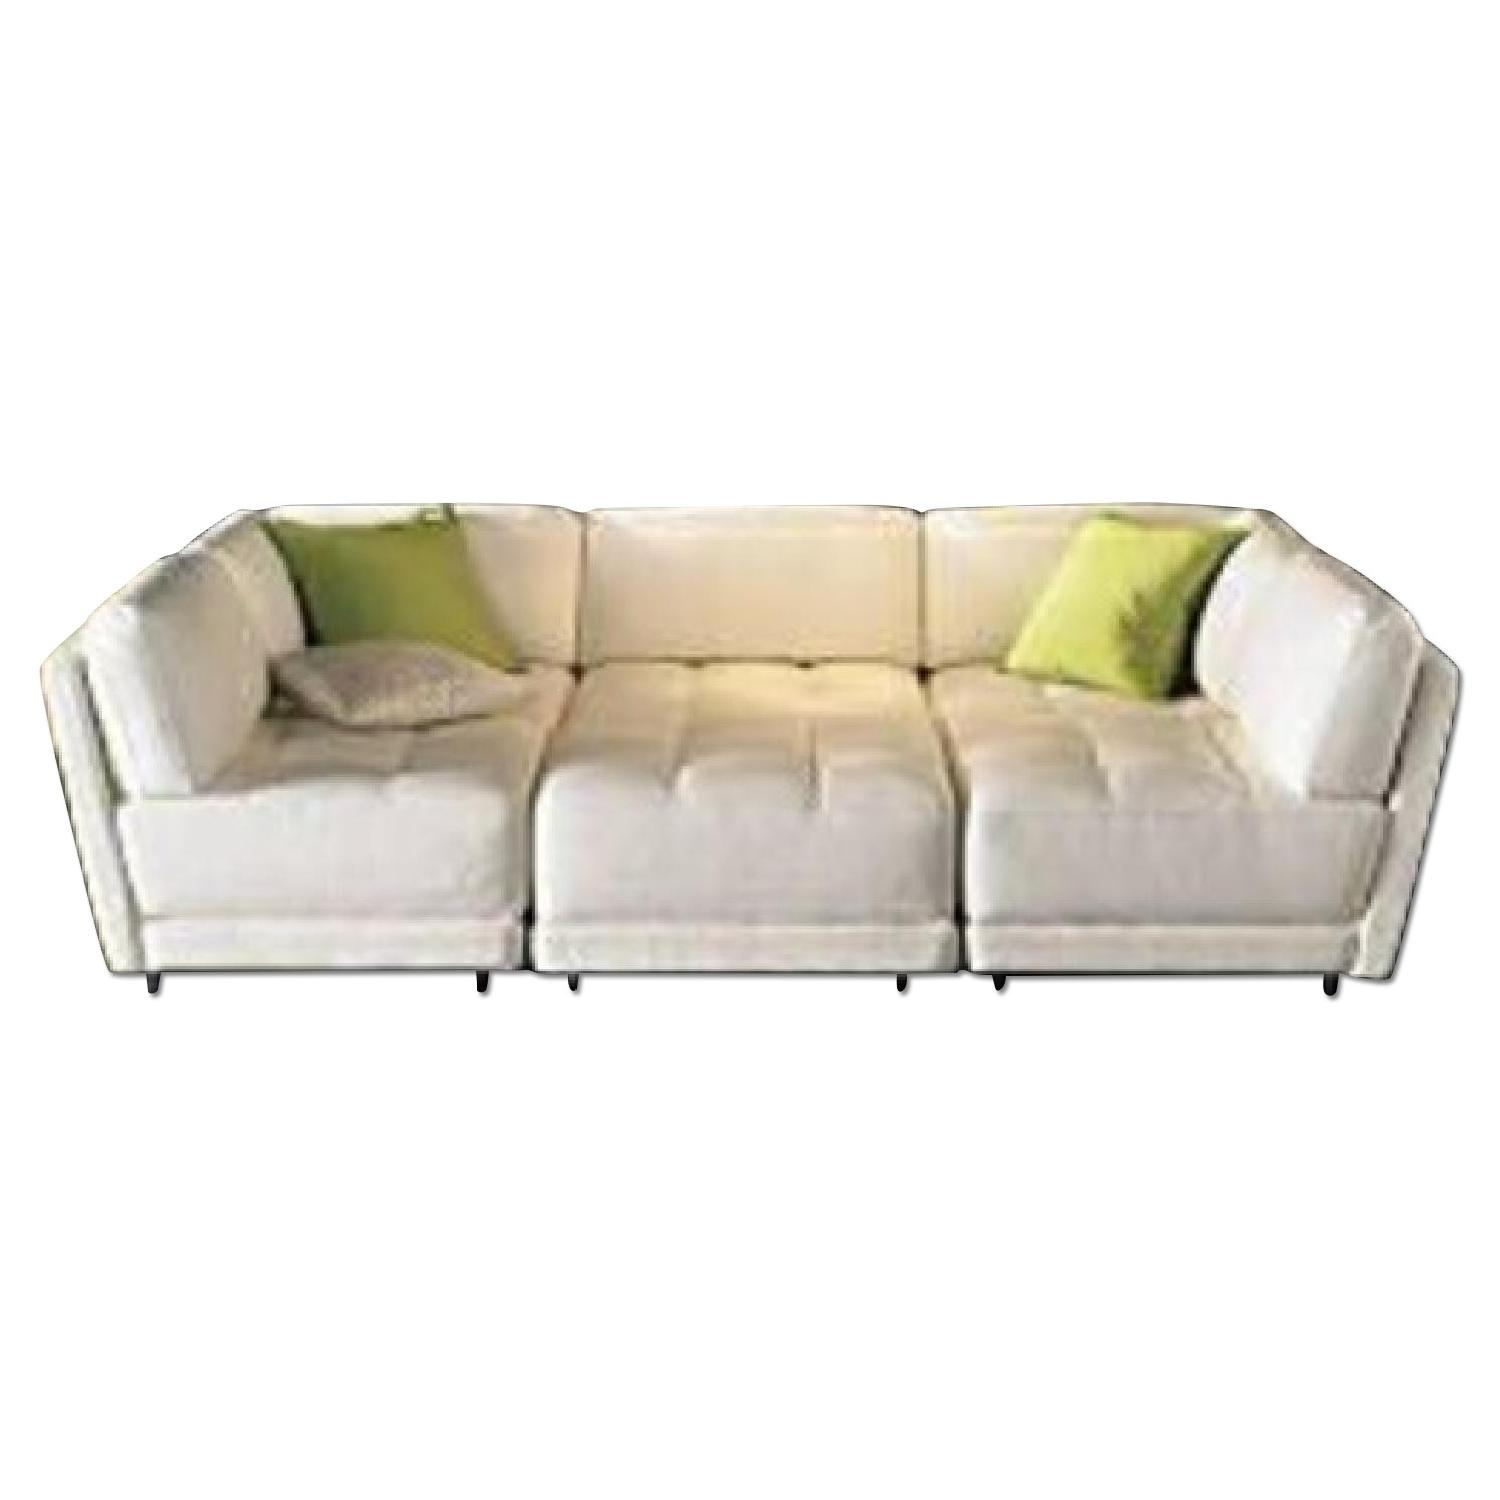 Vice Versa White Leather Modular Couch - image-0